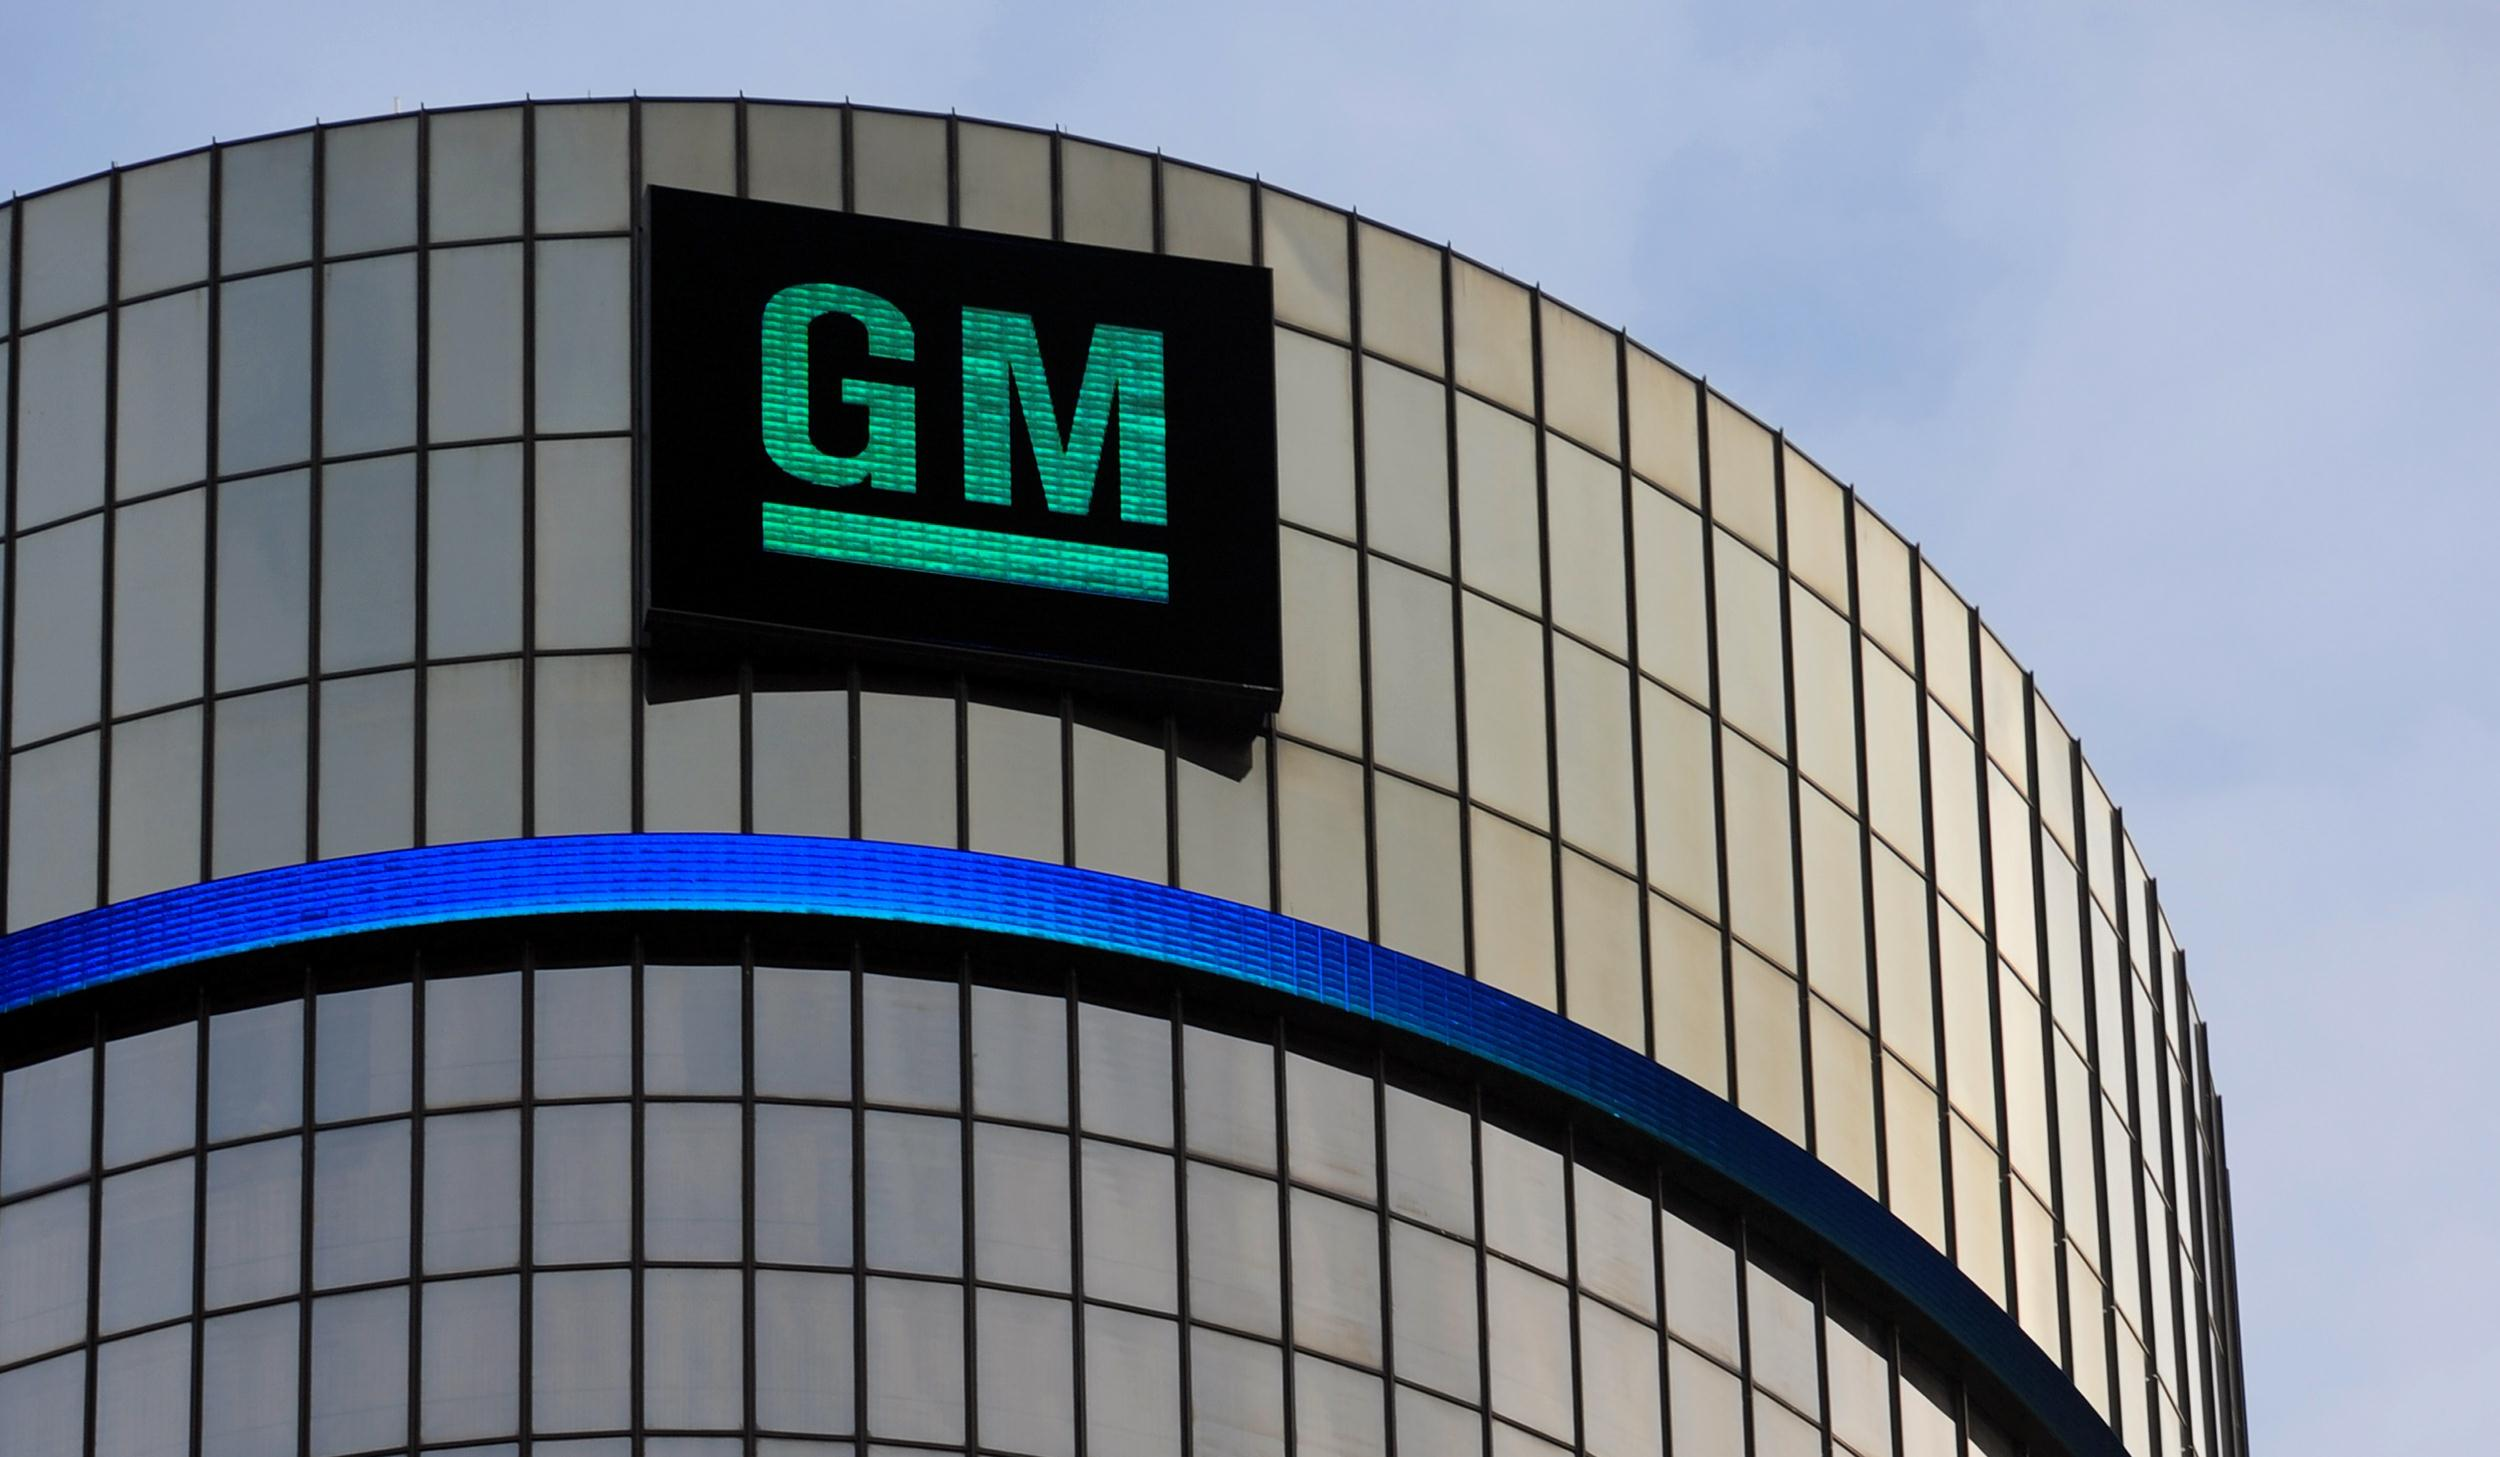 hrm at general motors However, ford motor company's generic strategy did not protect the business from competition with general motors by 1927, gm overtook ford to become the largest american automobile manufacturer.